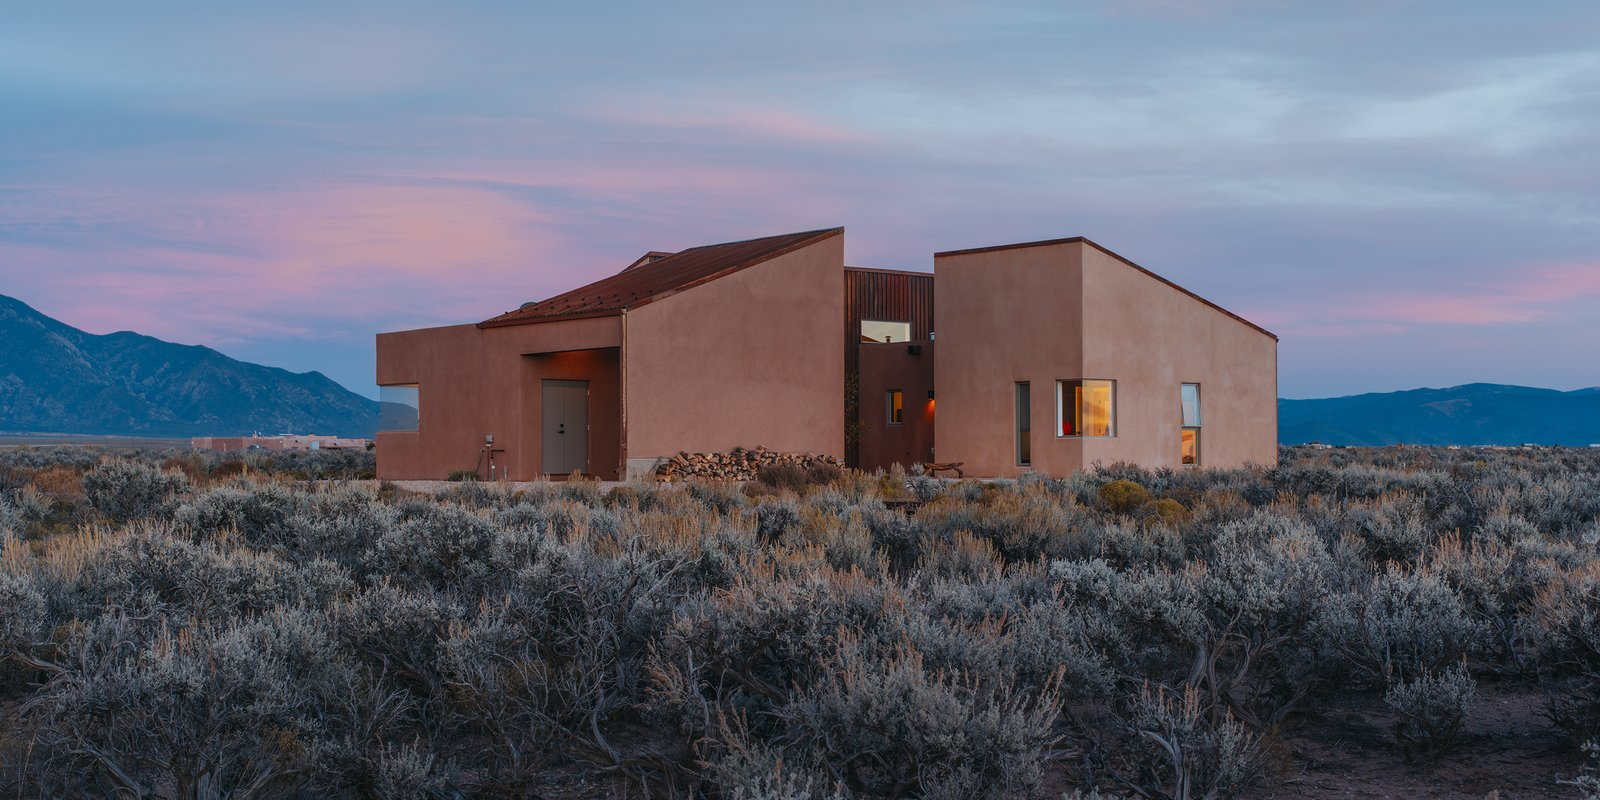 - Taos, New Mexico Dwell Magazine : July / August 2017 Tagged: Outdoor, Shrubs, and Desert.  Photo 1 of 11 in A Rookie Designer and Her Builder Father Create an Artist's Sculptural Loft in the Desert